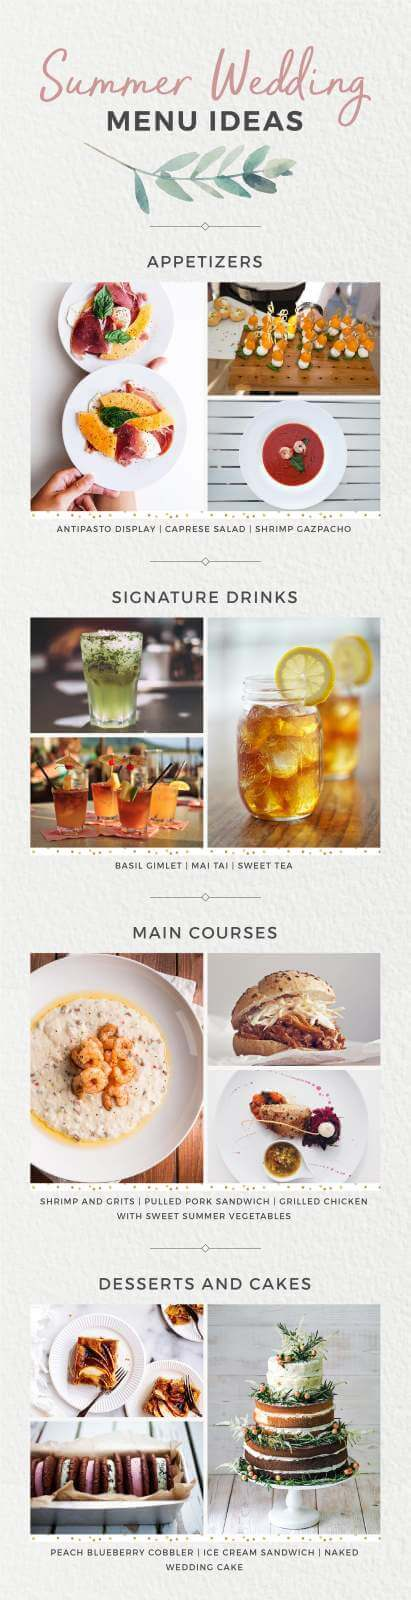 Summer Wedding Menu Ideas